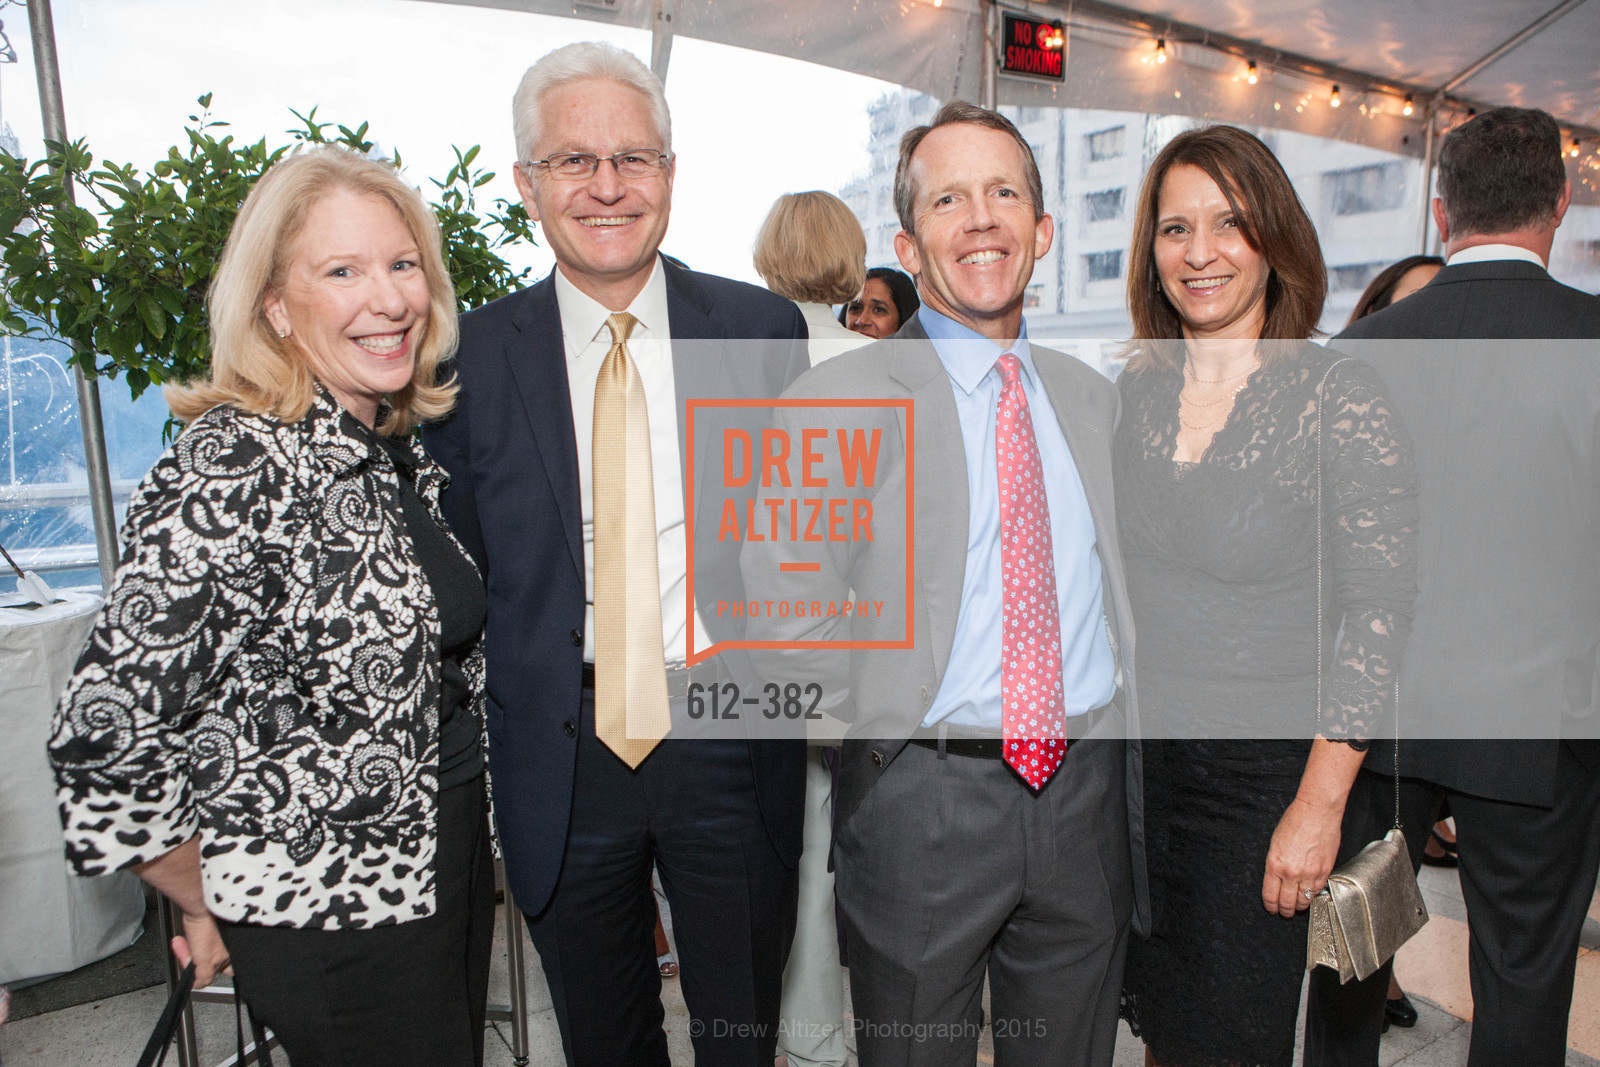 Suzanne Killei, Eric Bjerkholt, Dan Swisher, Suzanne Hooper, American Cancer Society San Francisco Soiree, Four Seasons Hotel. 757 Market Street, October 15th, 2015,Drew Altizer, Drew Altizer Photography, full-service agency, private events, San Francisco photographer, photographer california